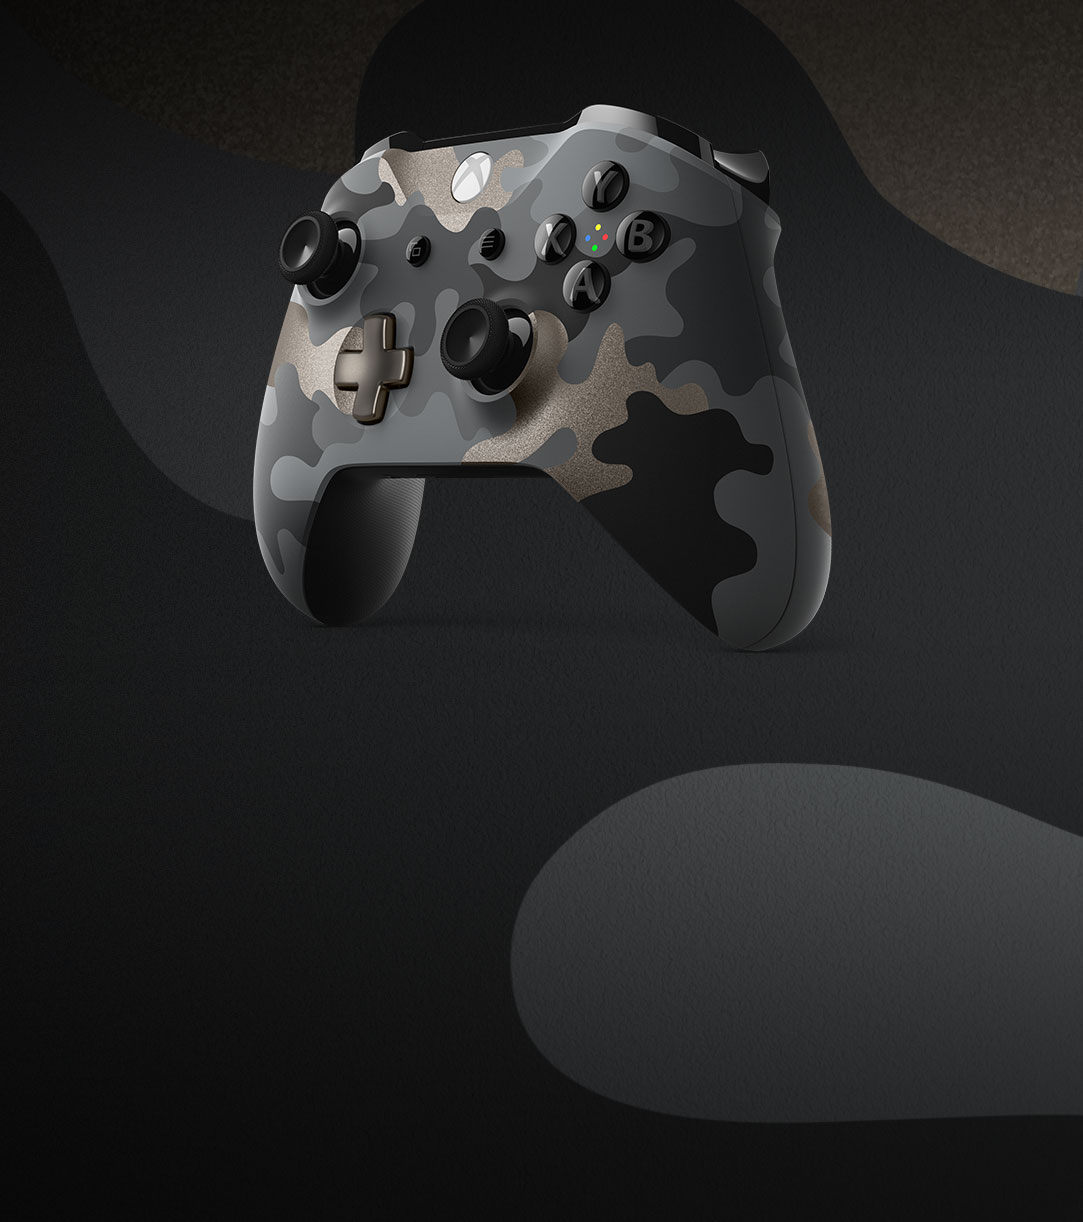 Xbox Official Site: Consoles, Games, and Community | Xbox